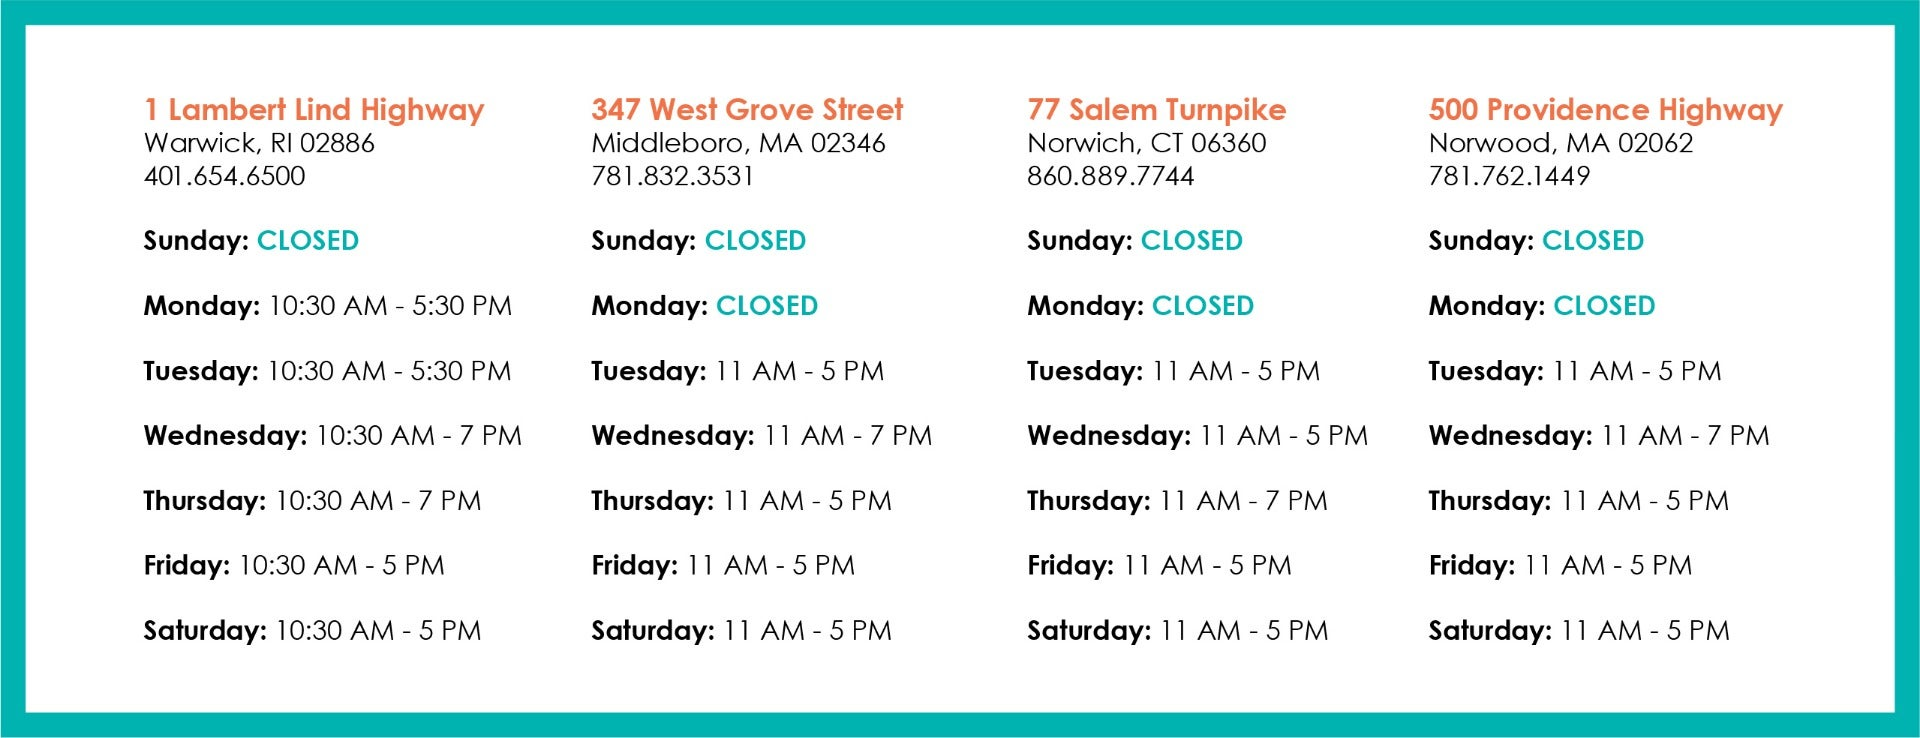 Temporary Store Hours - Updated June 12, 2020